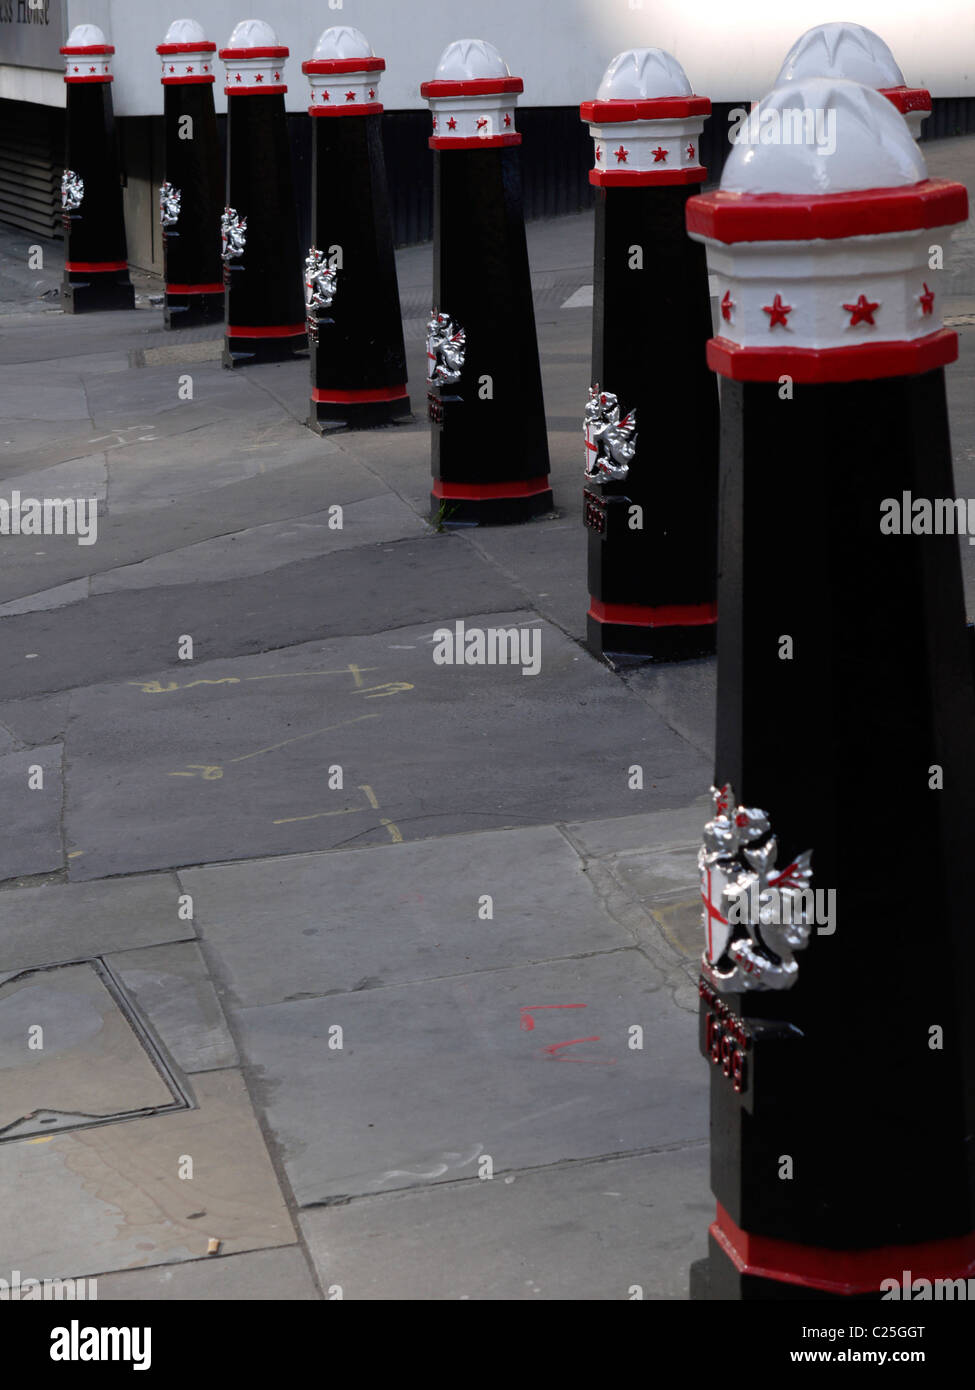 City of london Bollards mark the boundary of the city of london square mile - Stock Image